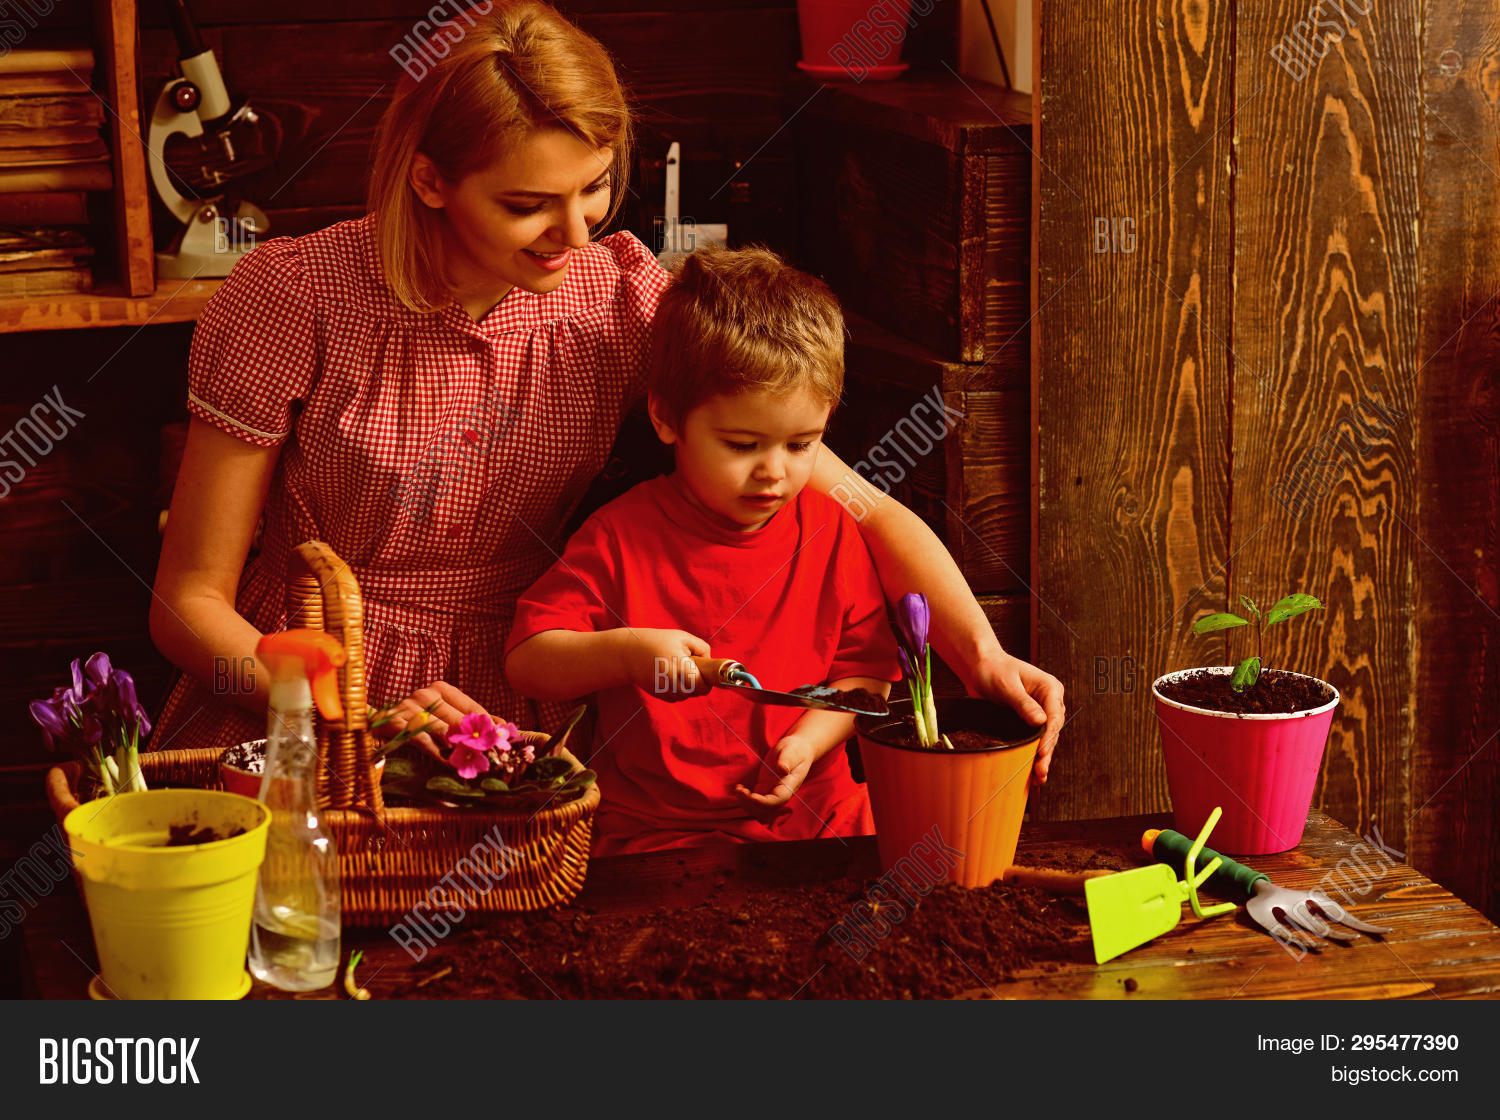 activity,adorable,baby,bloom,blossom,boy,child,childhood,cute,ecology,enjoy,environment,family,floral,flower,garden,gardening,growth,help,hobby,indoor,kid,little,love,mother,natural,nature,plant,planting,pot,small,soil,spring,summer,tool,trust,woman